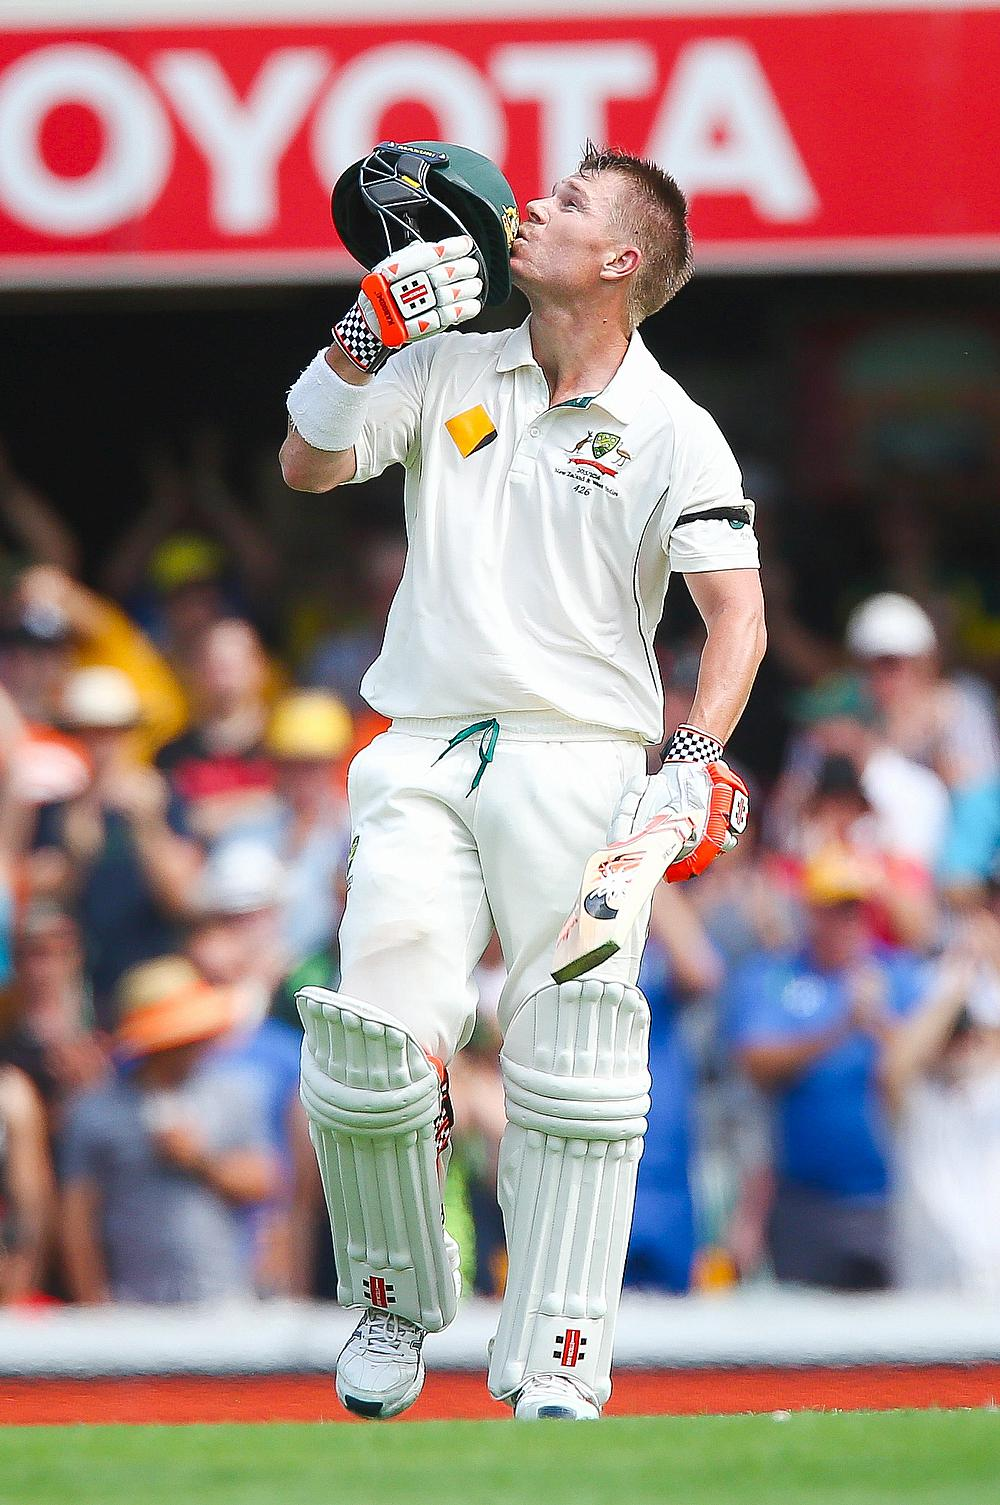 David Warner celebrating his century in the first innings of the first Test against New Zealand in Brisbane.